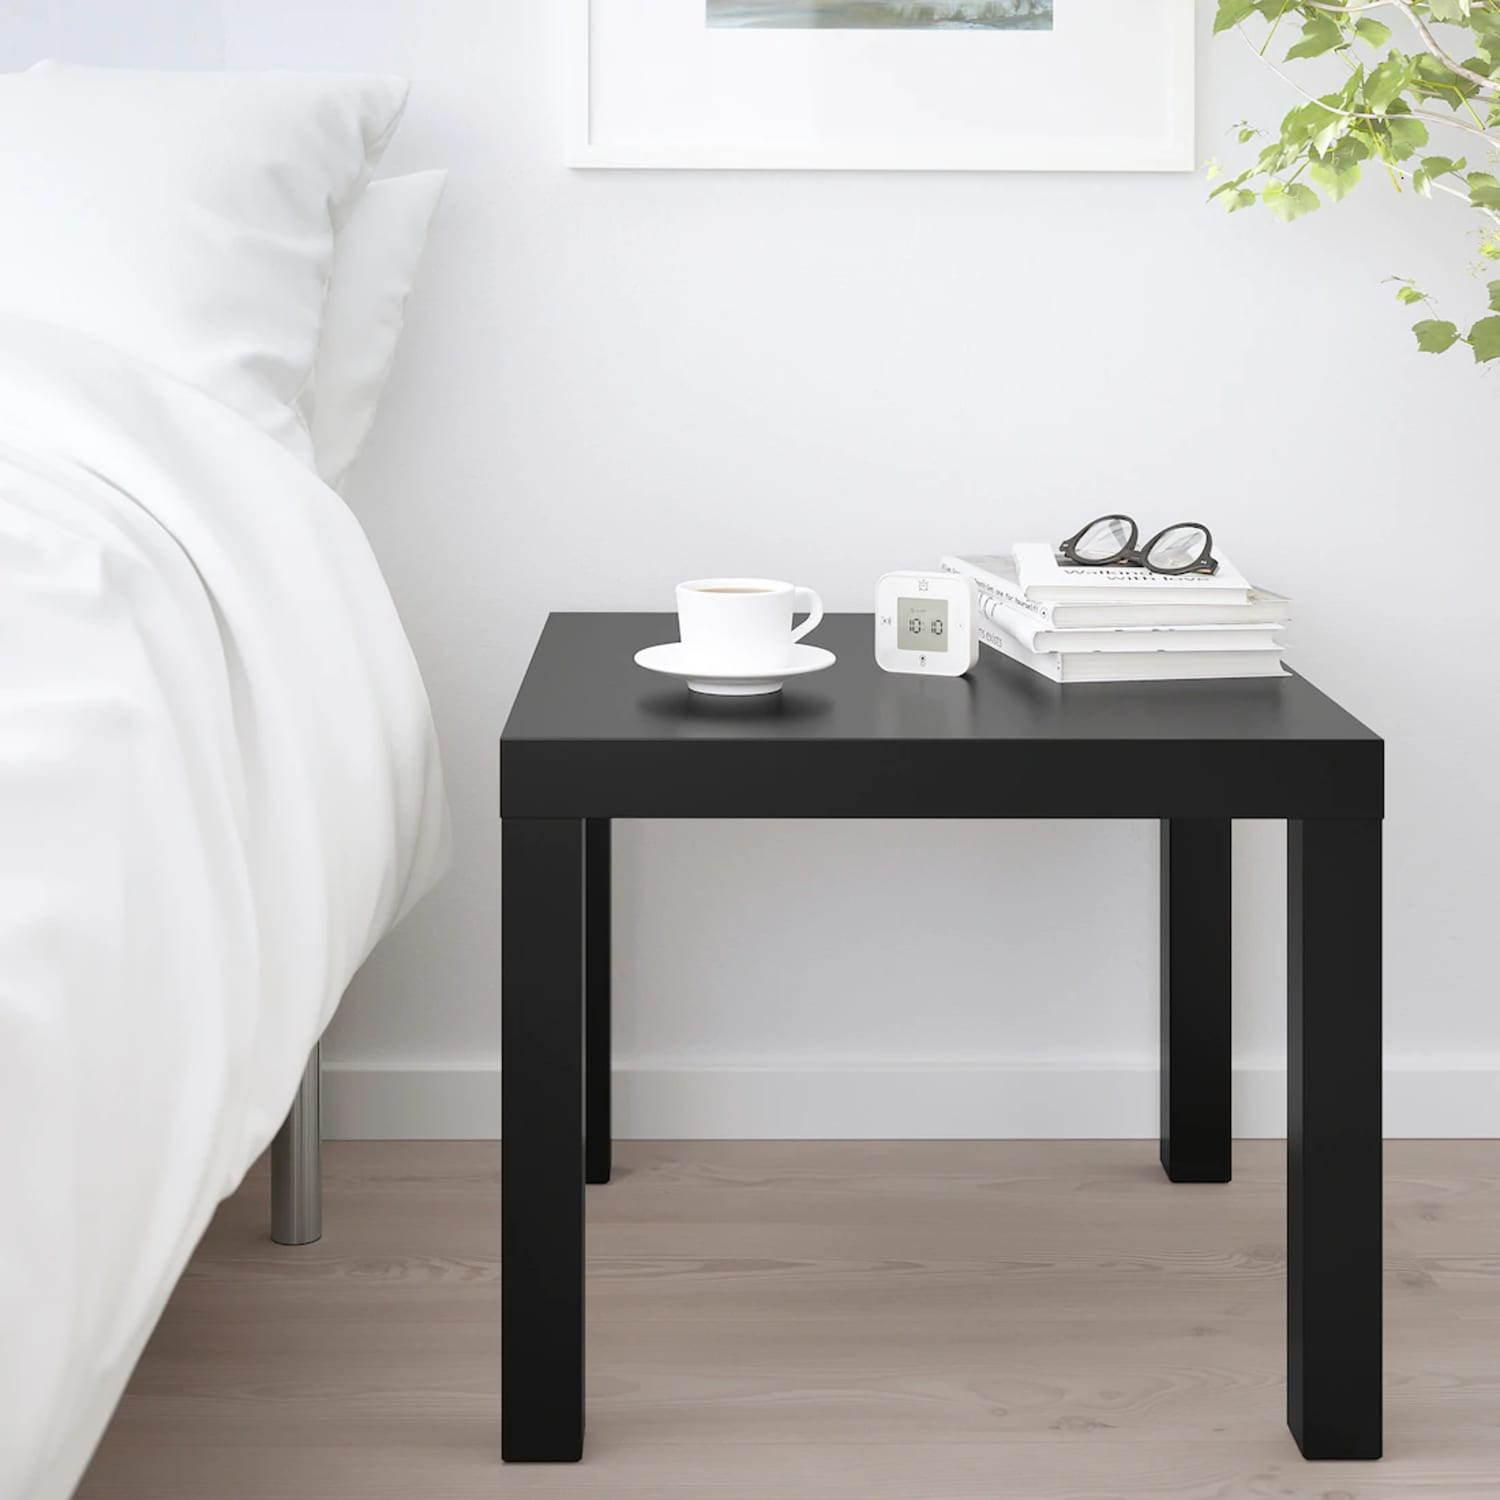 6 Inspirational Hacks that Make IKEA's $10 LACK Table Look Like a Million Bucks